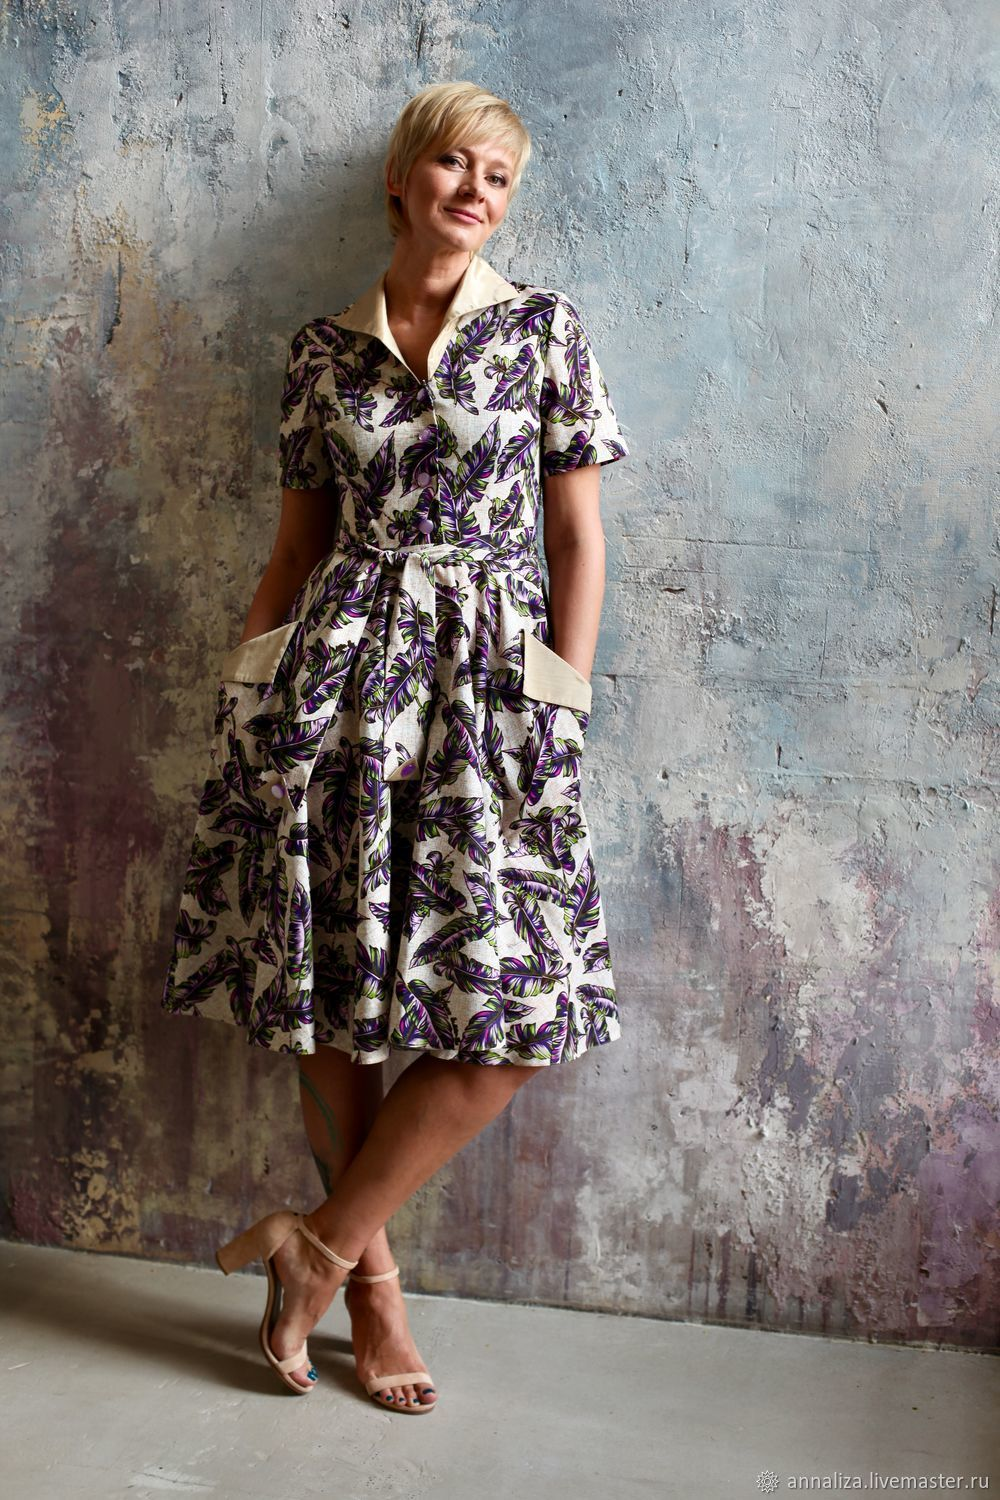 Dress in the style of 50-ies of the skater, Dresses, Moscow,  Фото №1